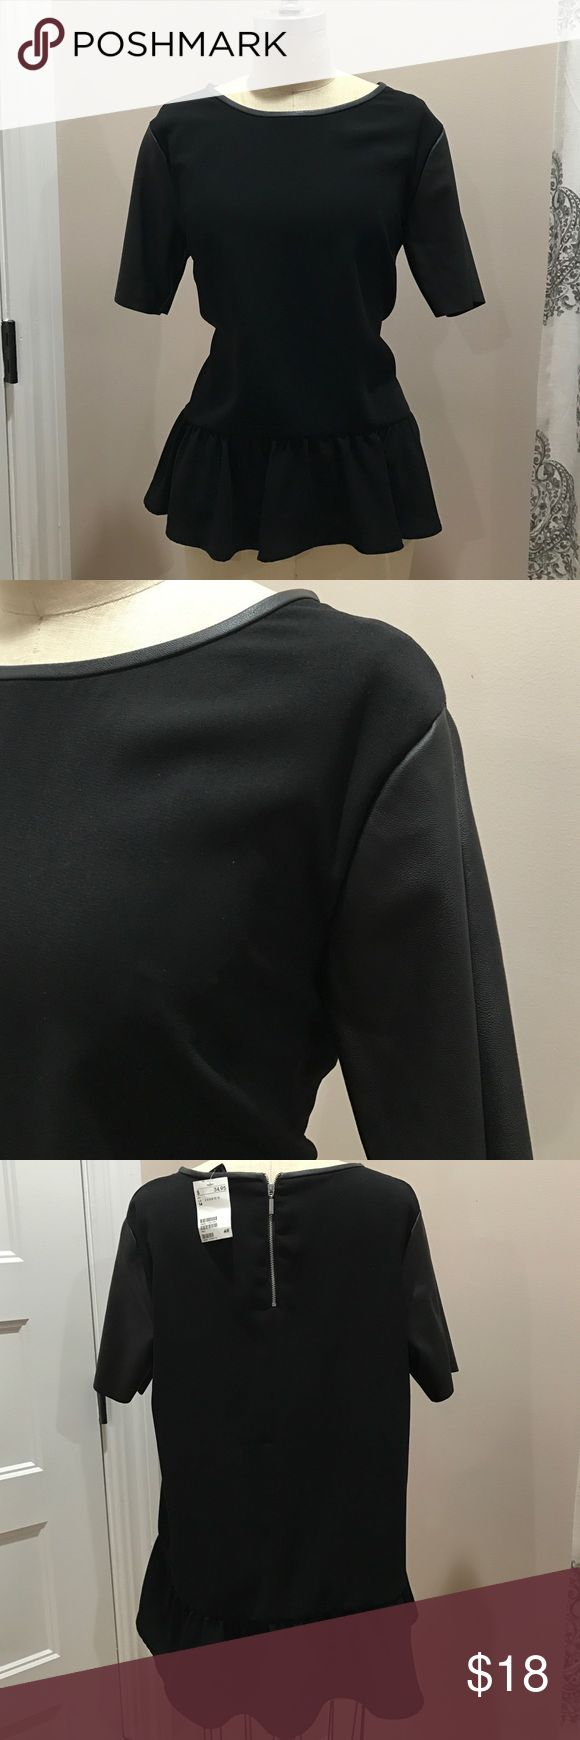 Black Peplum Top with Faux Leather Trim Black Peplum Top with Faux Leather Trim. Size 14. Look edgy, classy and so put together all at the same time with this top. H&M Tops Blouses